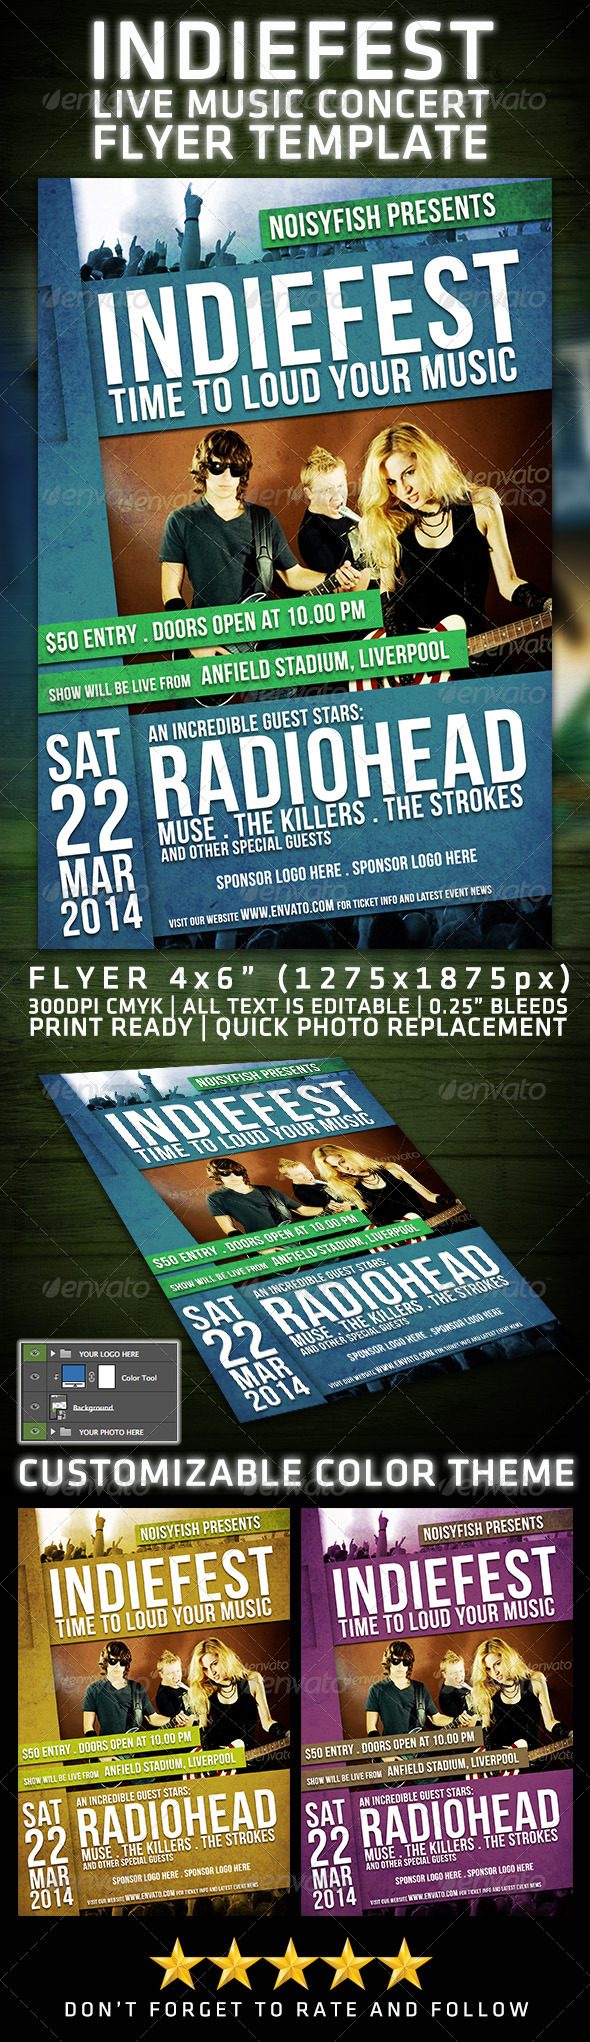 GraphicRiver Indiefest Live Music Flyer 7106347